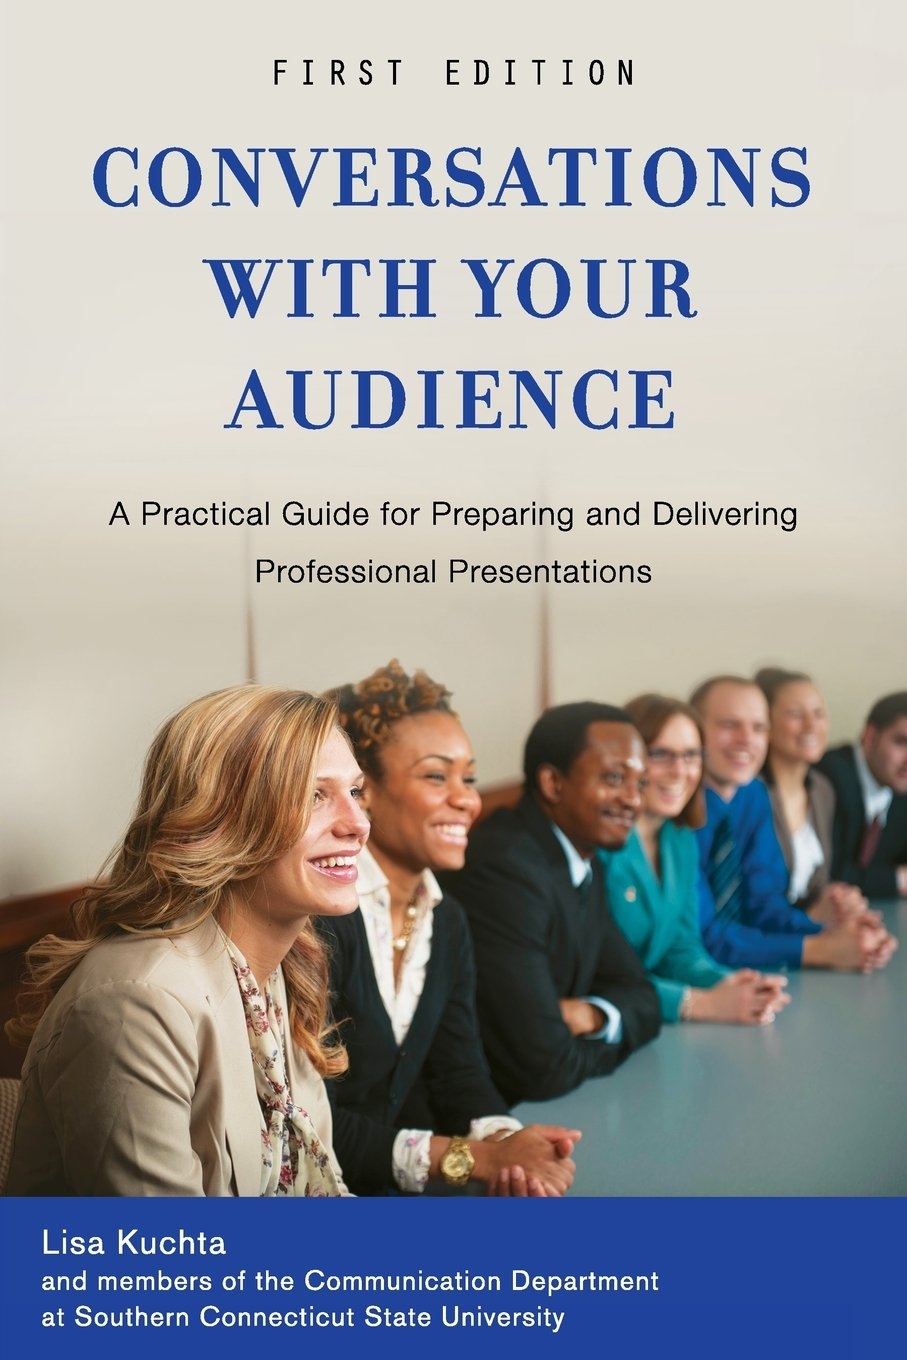 Conversations with Your Audience: A Practical Guide for Preparing and Delivering Professional Presentations pdf